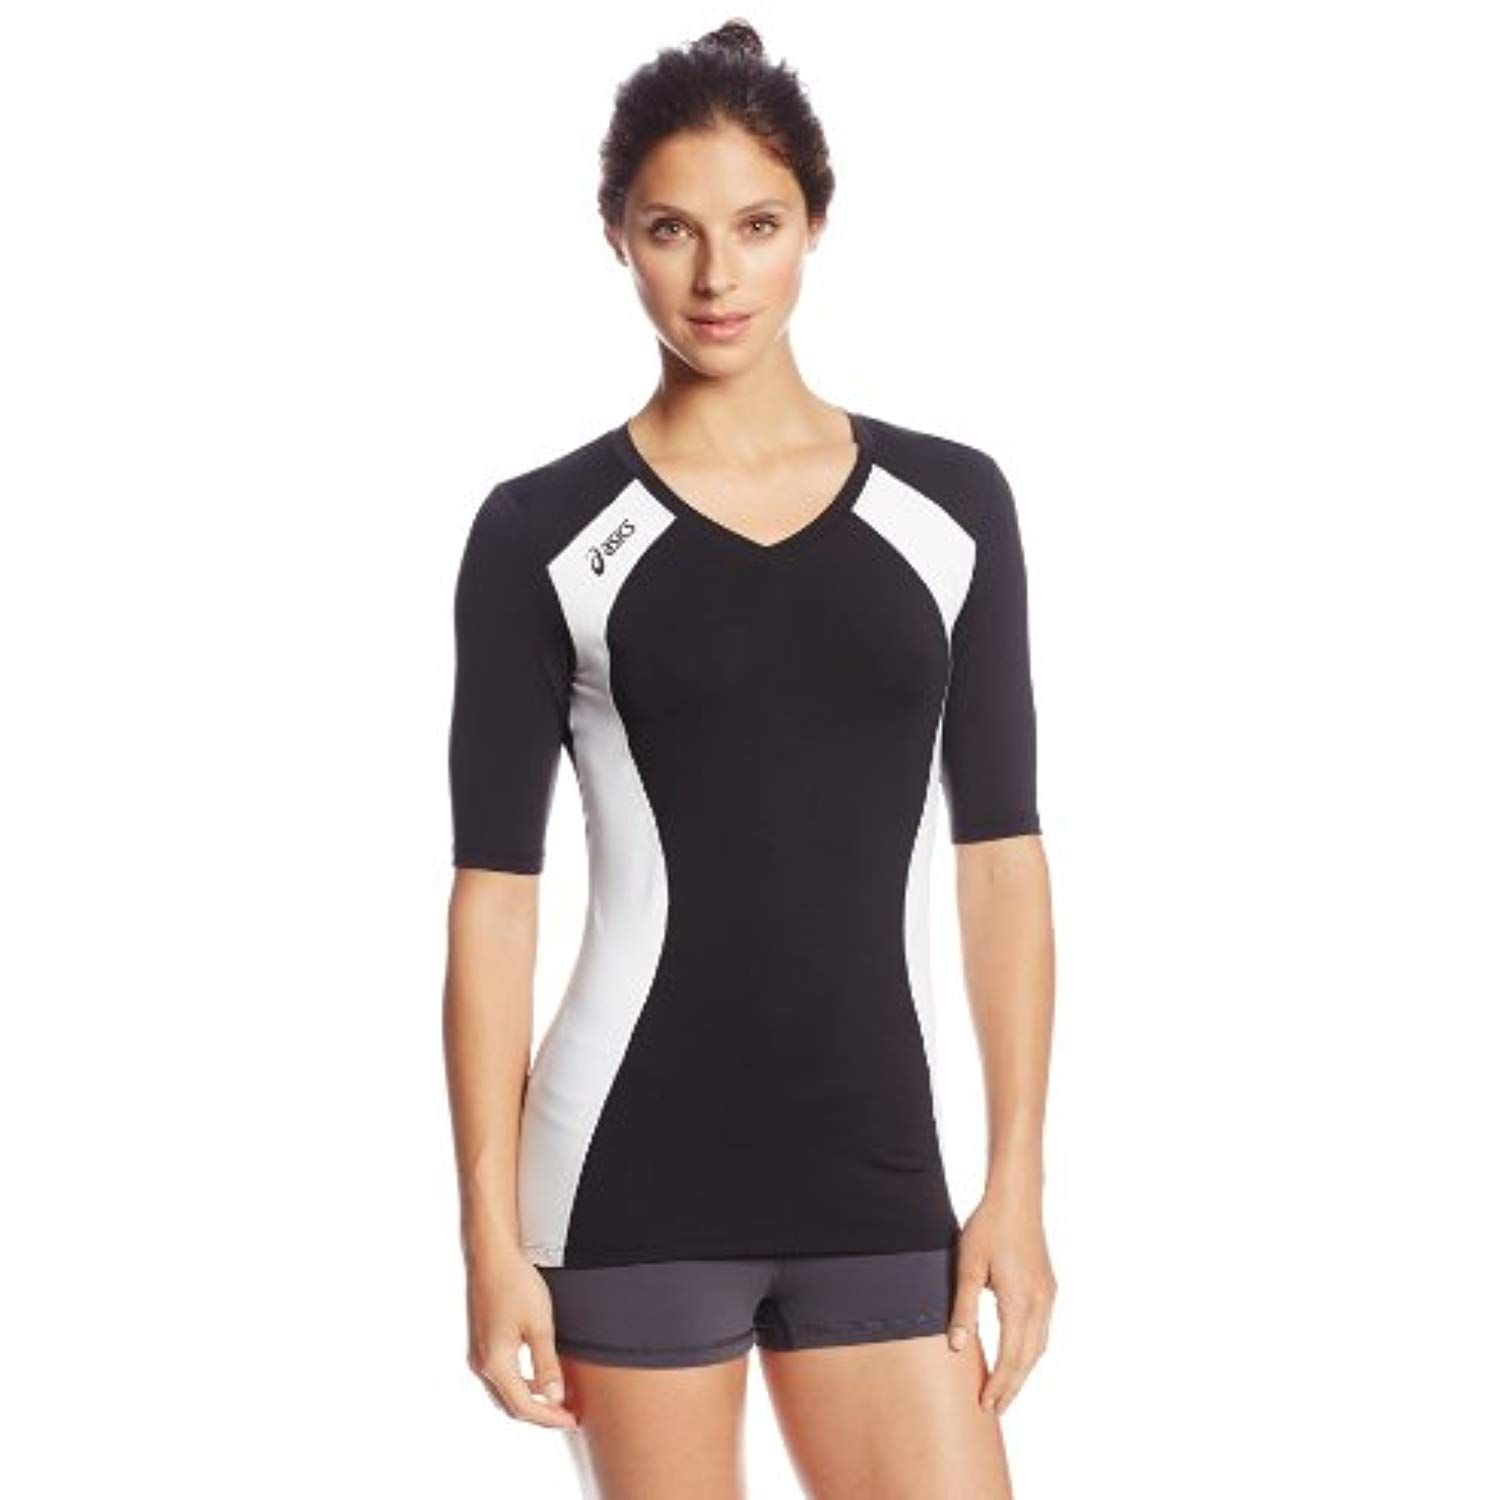 Asics Women S Aggressor Volleyball Jersey Black White Check This Awesome Product By Going To The Lin Asics Women Active Wear For Women Volleyball Jerseys